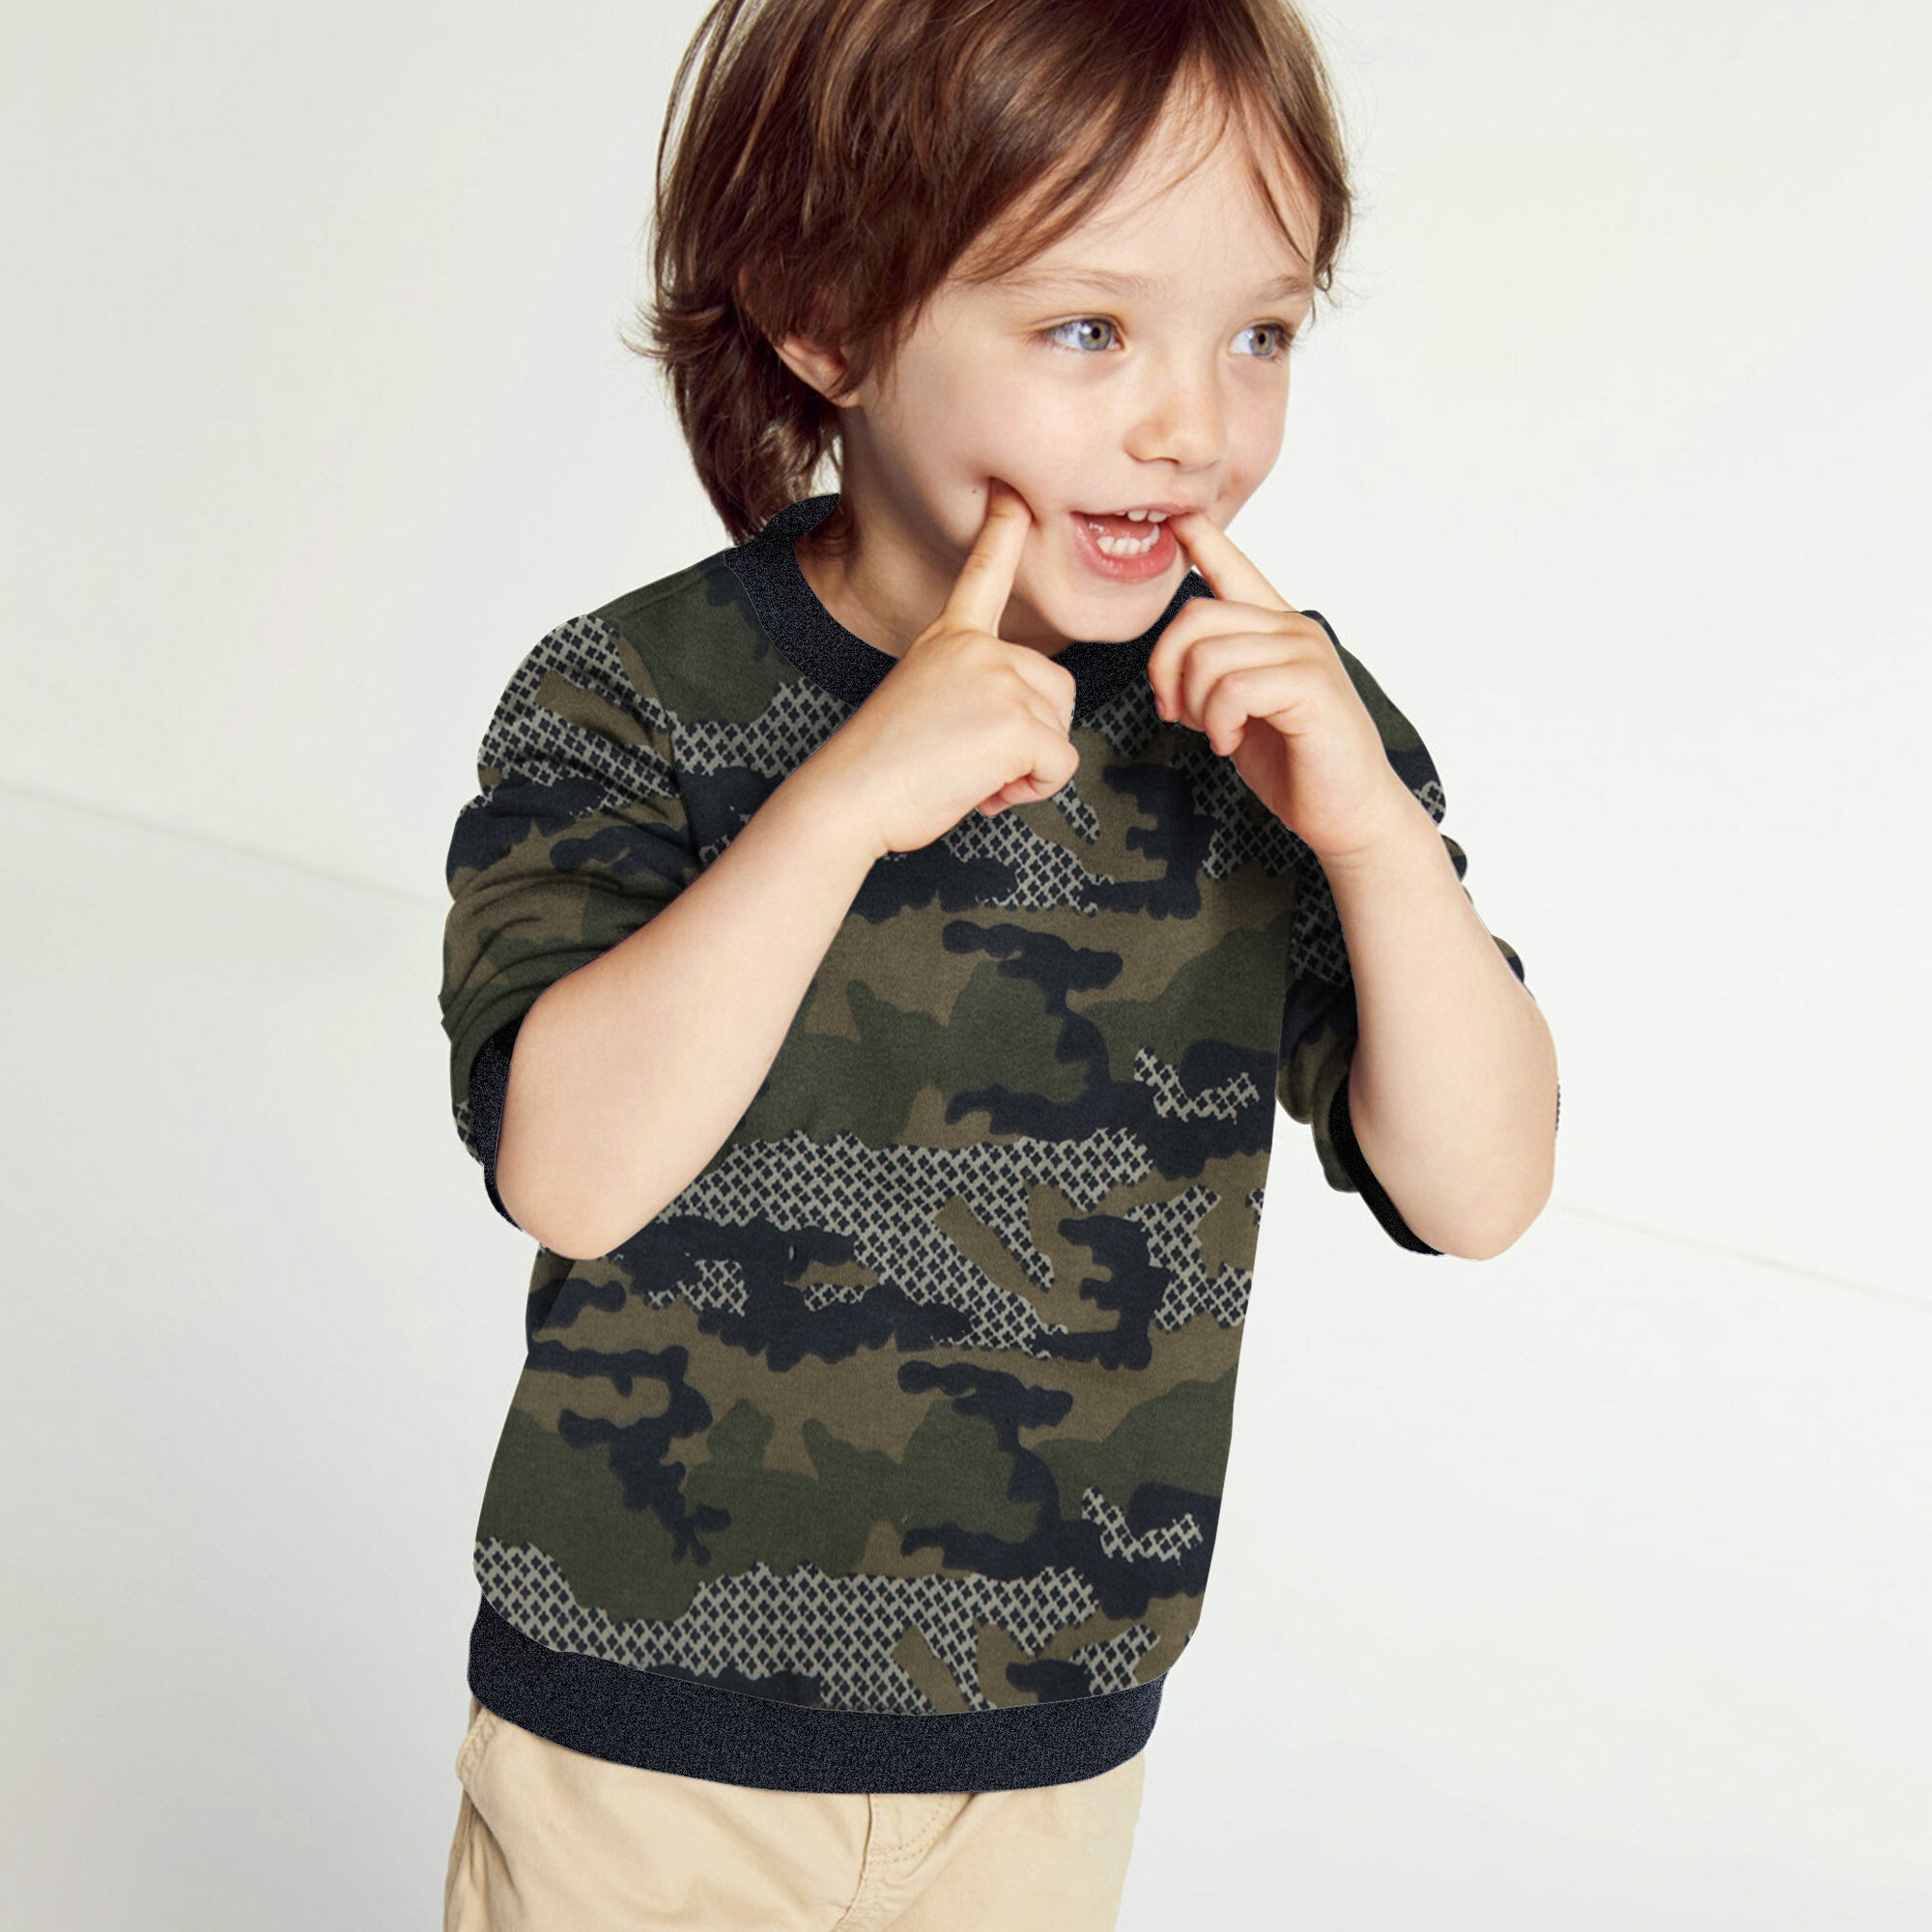 Tommy Hilfiger Fleece Crew Neck Sweatshirt For Kids-Camouflage-SP1381